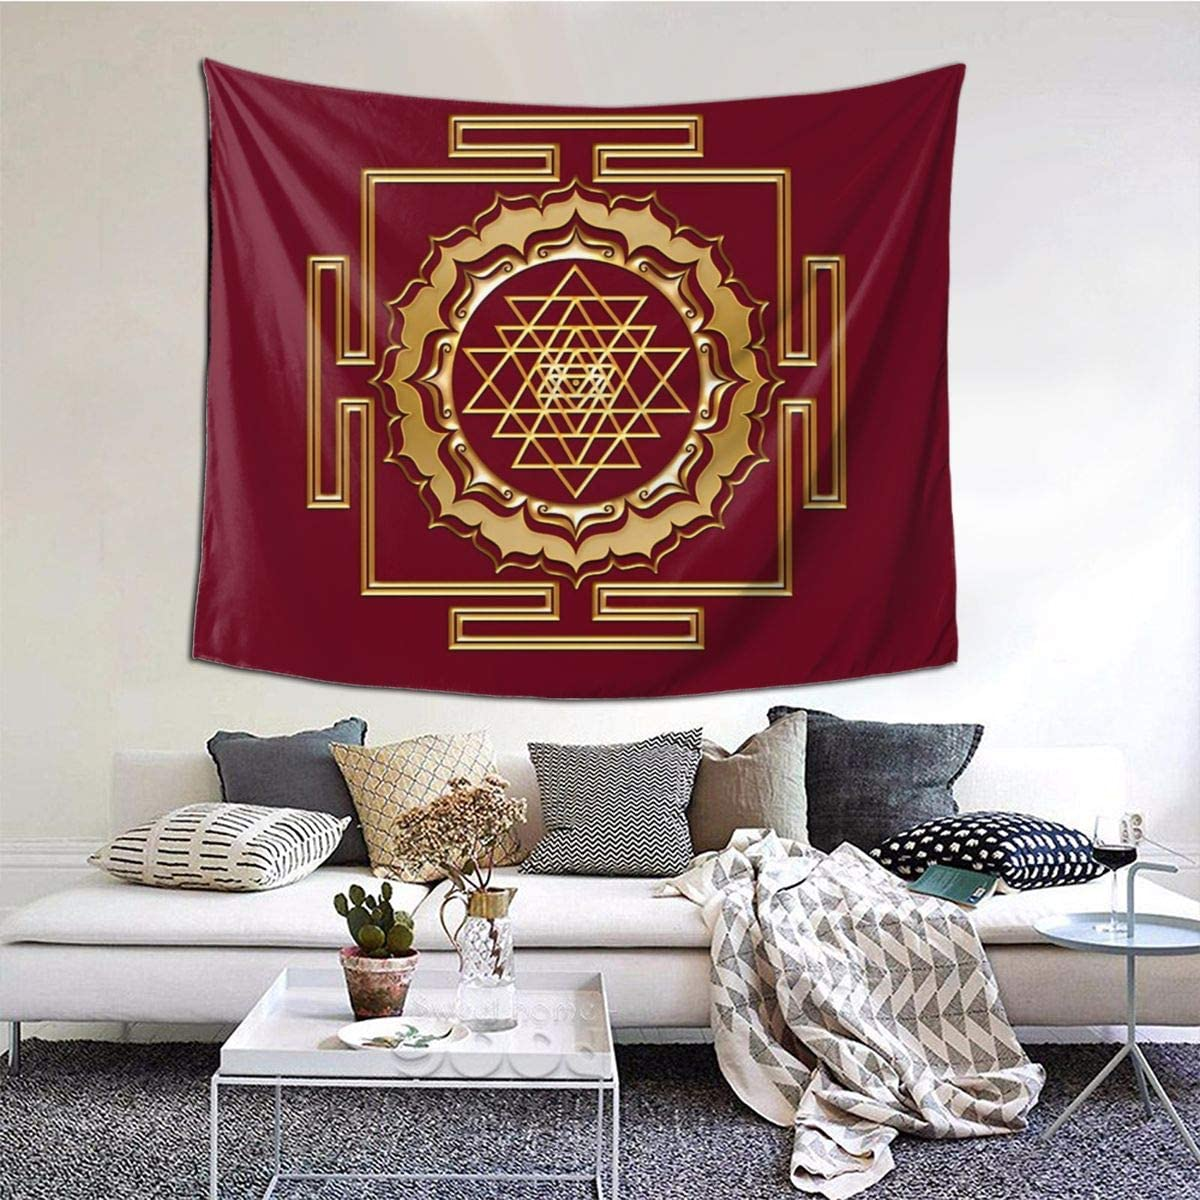 TANGOGO Tapestry Funny Shri Yantra - Cosmic Conductor of Energy Wall Hanging Home Decor for Living Room Bedroom Dorm Room 60 W X 51 H Inches